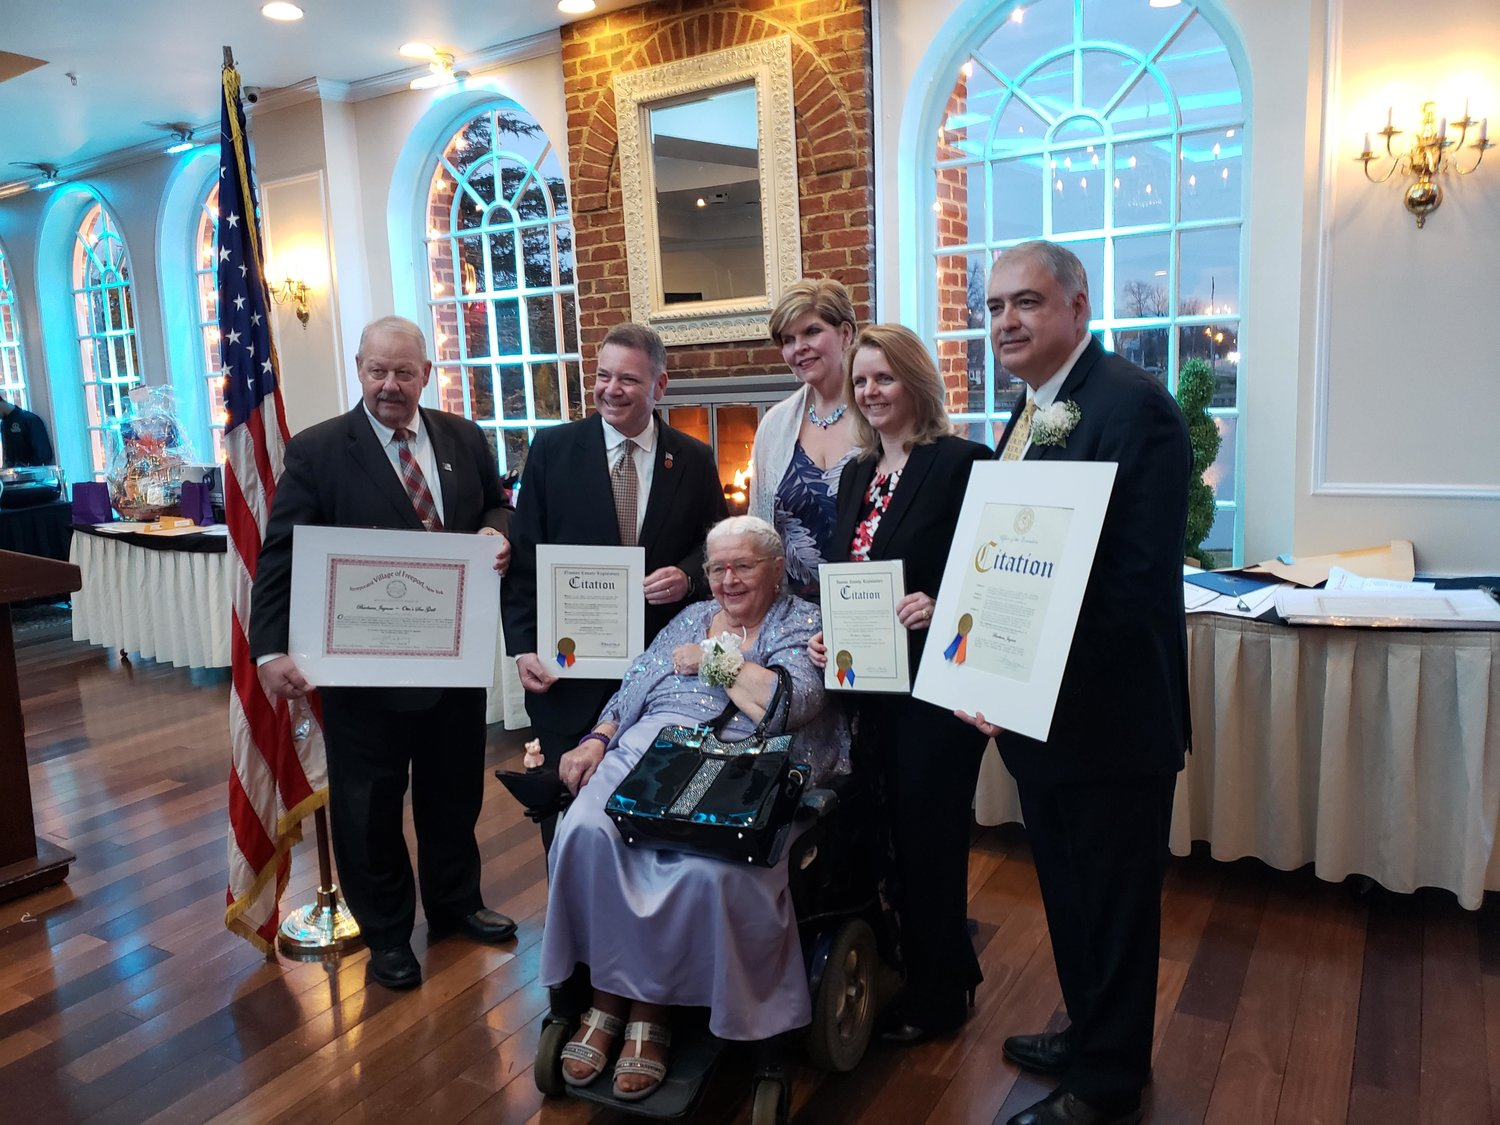 Native Freeporter Barbara Jagnow, center, was named the Business Person of the Year by the chamber and was presented with a number of awards and citations from elected officials.